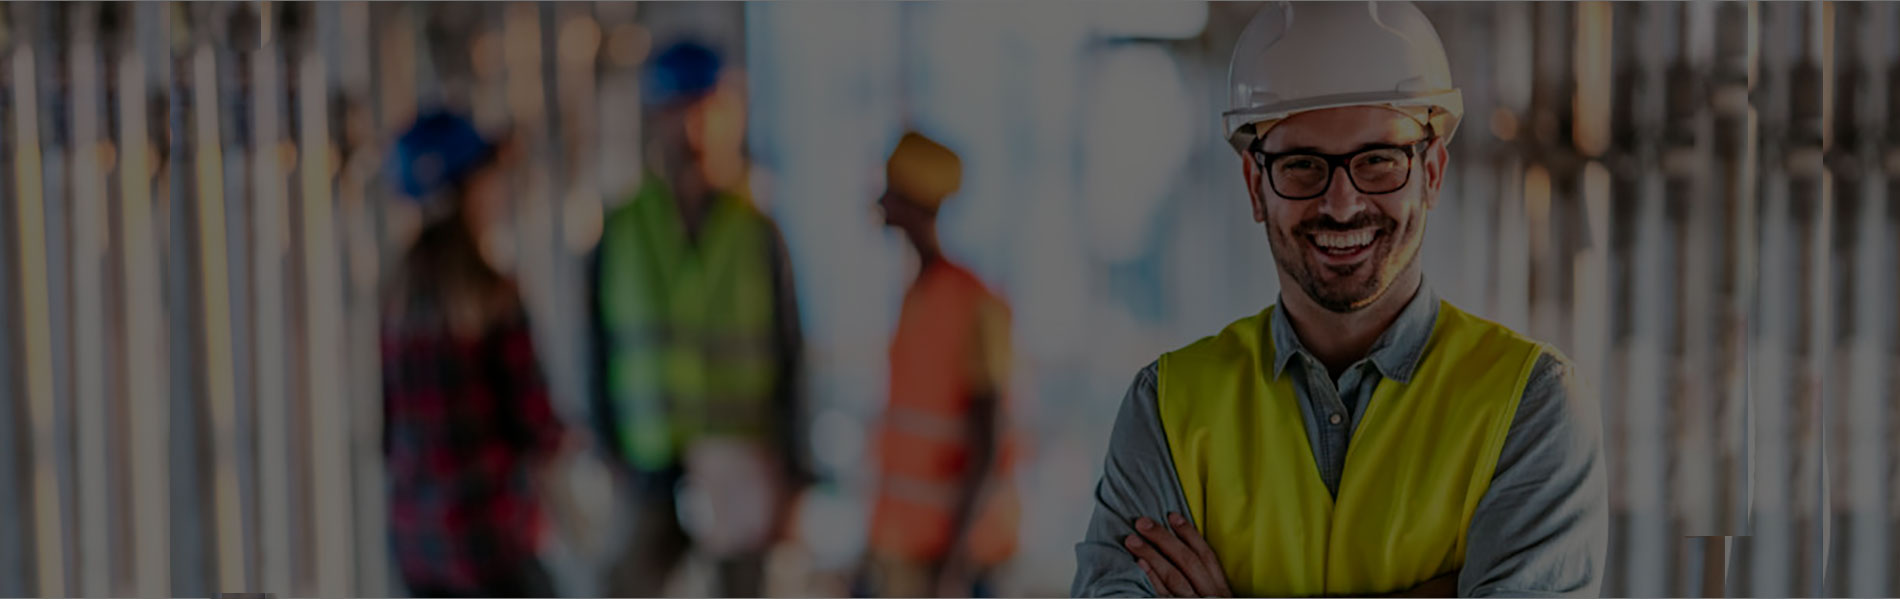 Online Education & Certification for Architecture, Engineering, & Construction